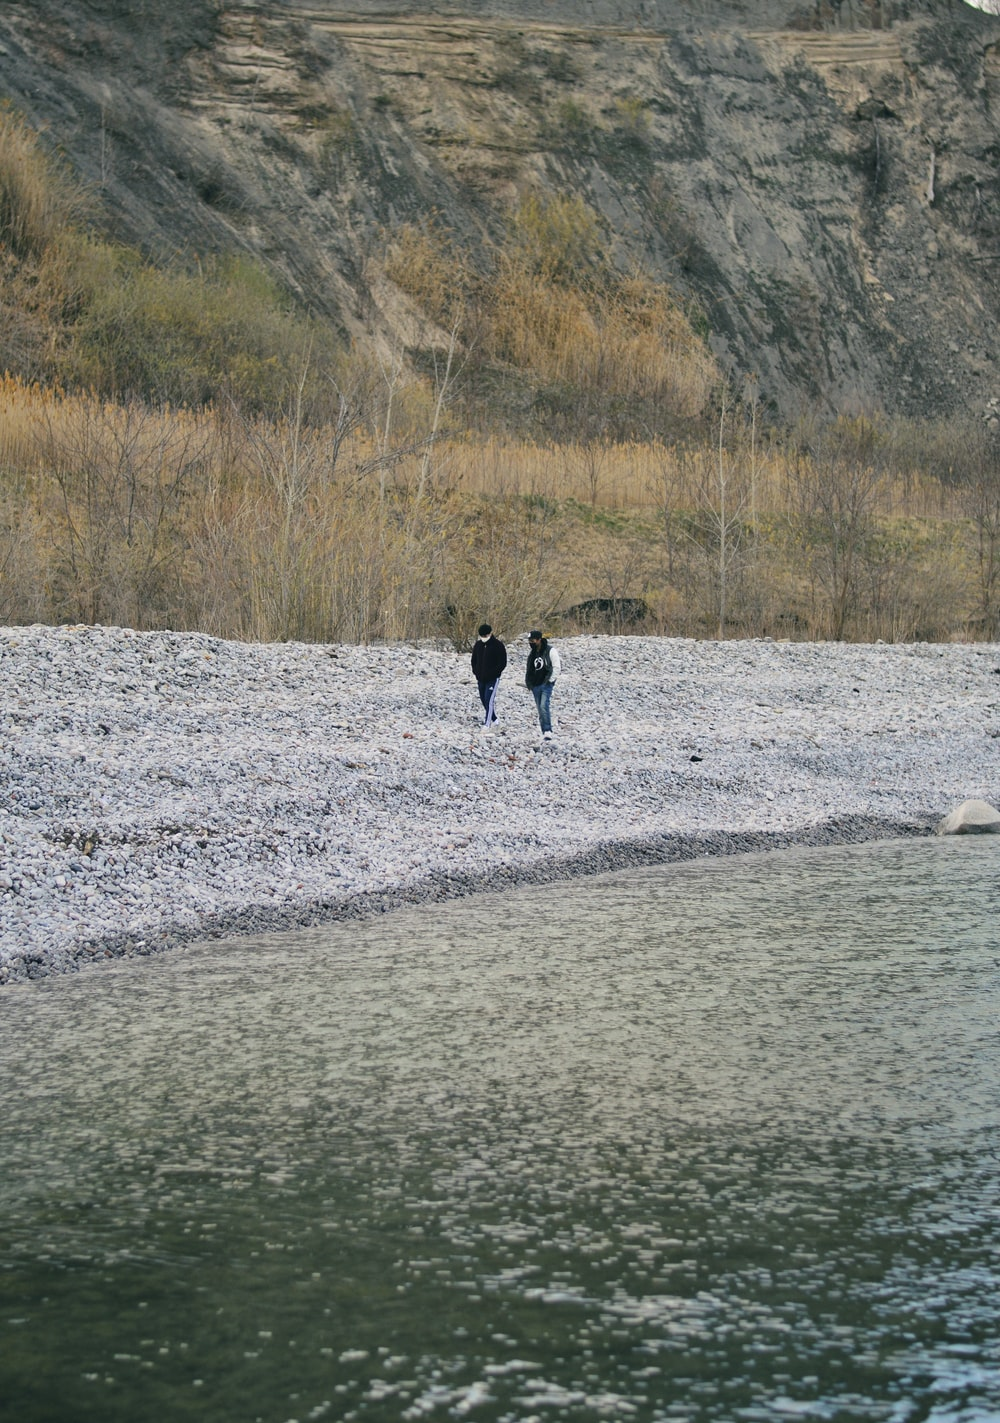 person in black jacket walking on gray sand near body of water during daytime